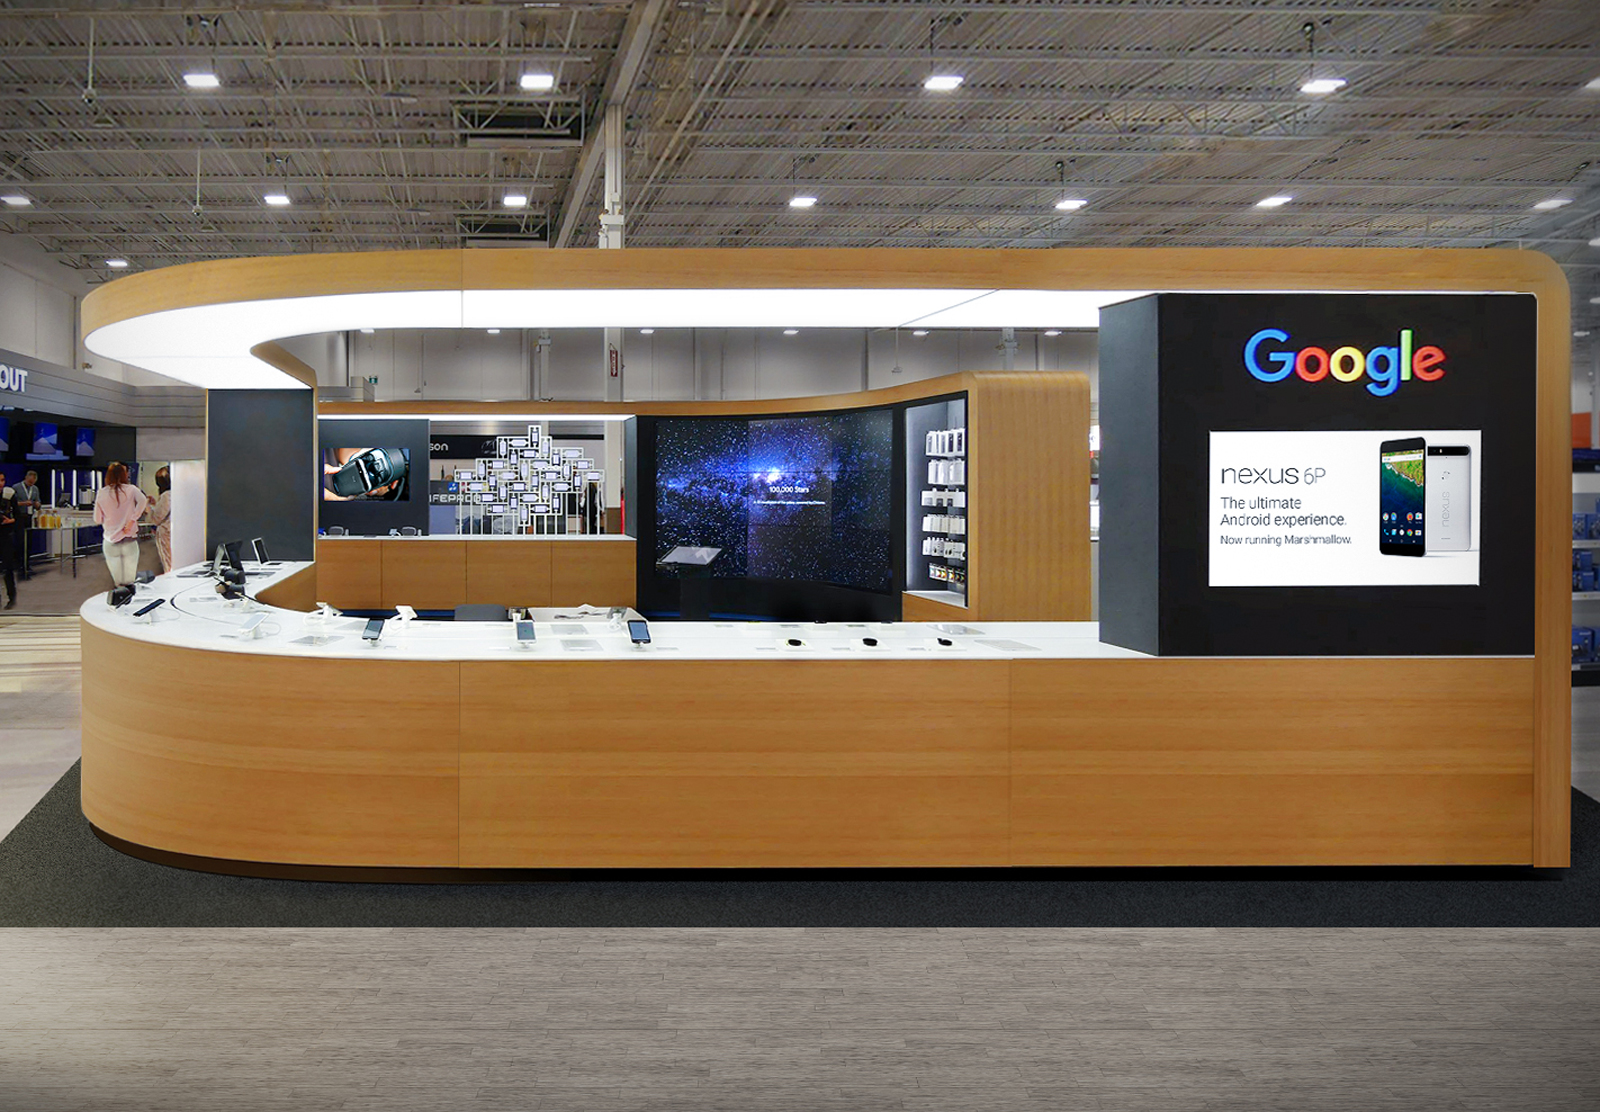 Google Store counter display from exterior